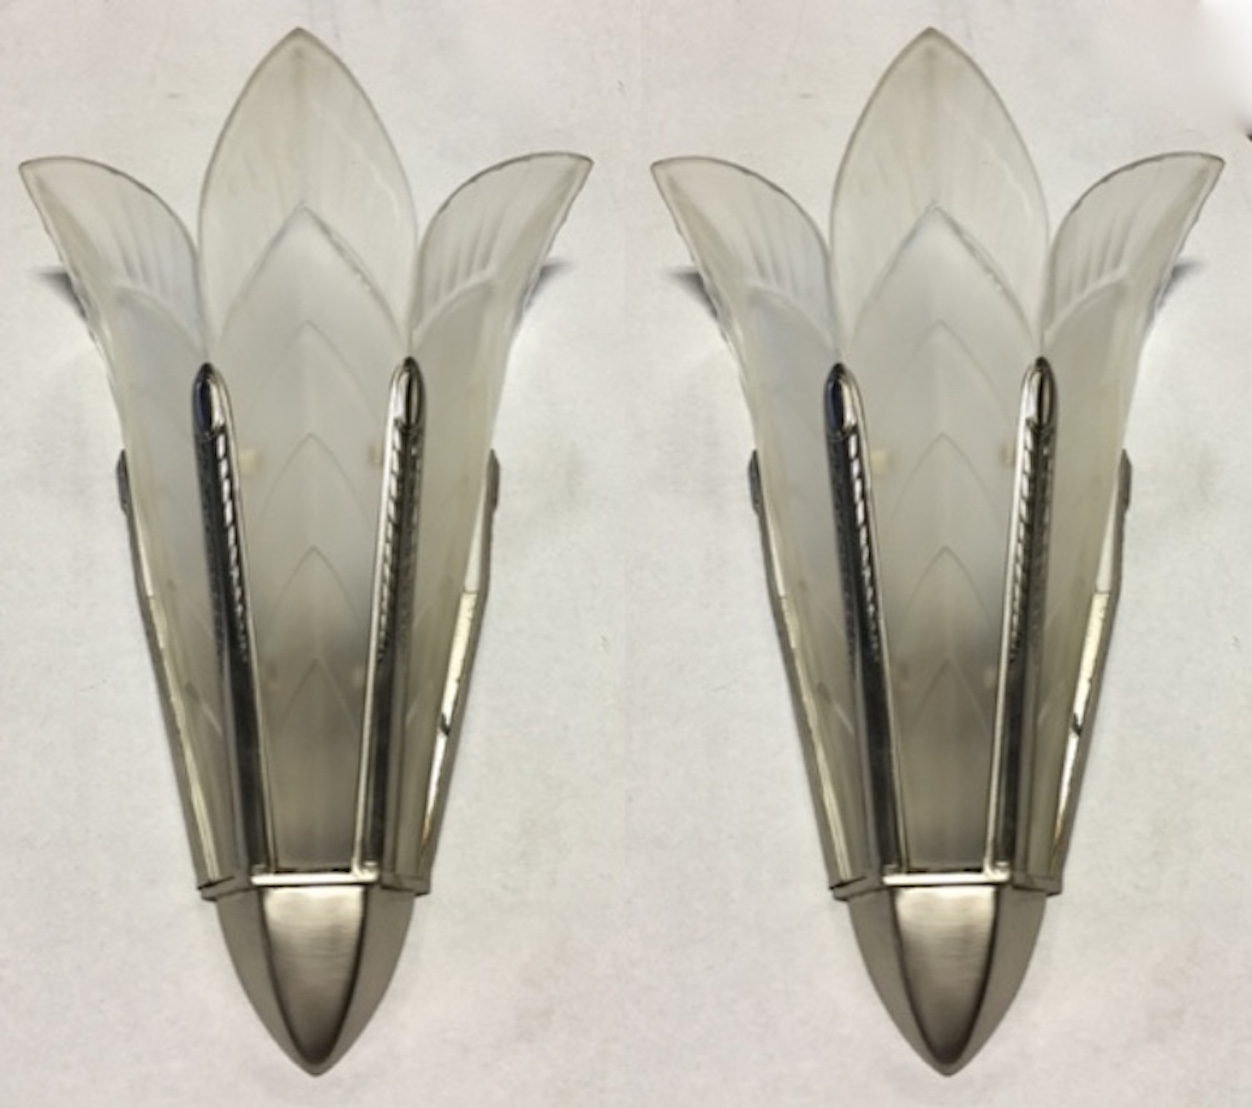 Art Deco Wall Sconces a pair of signed sabino french art deco wall sconces | modernism